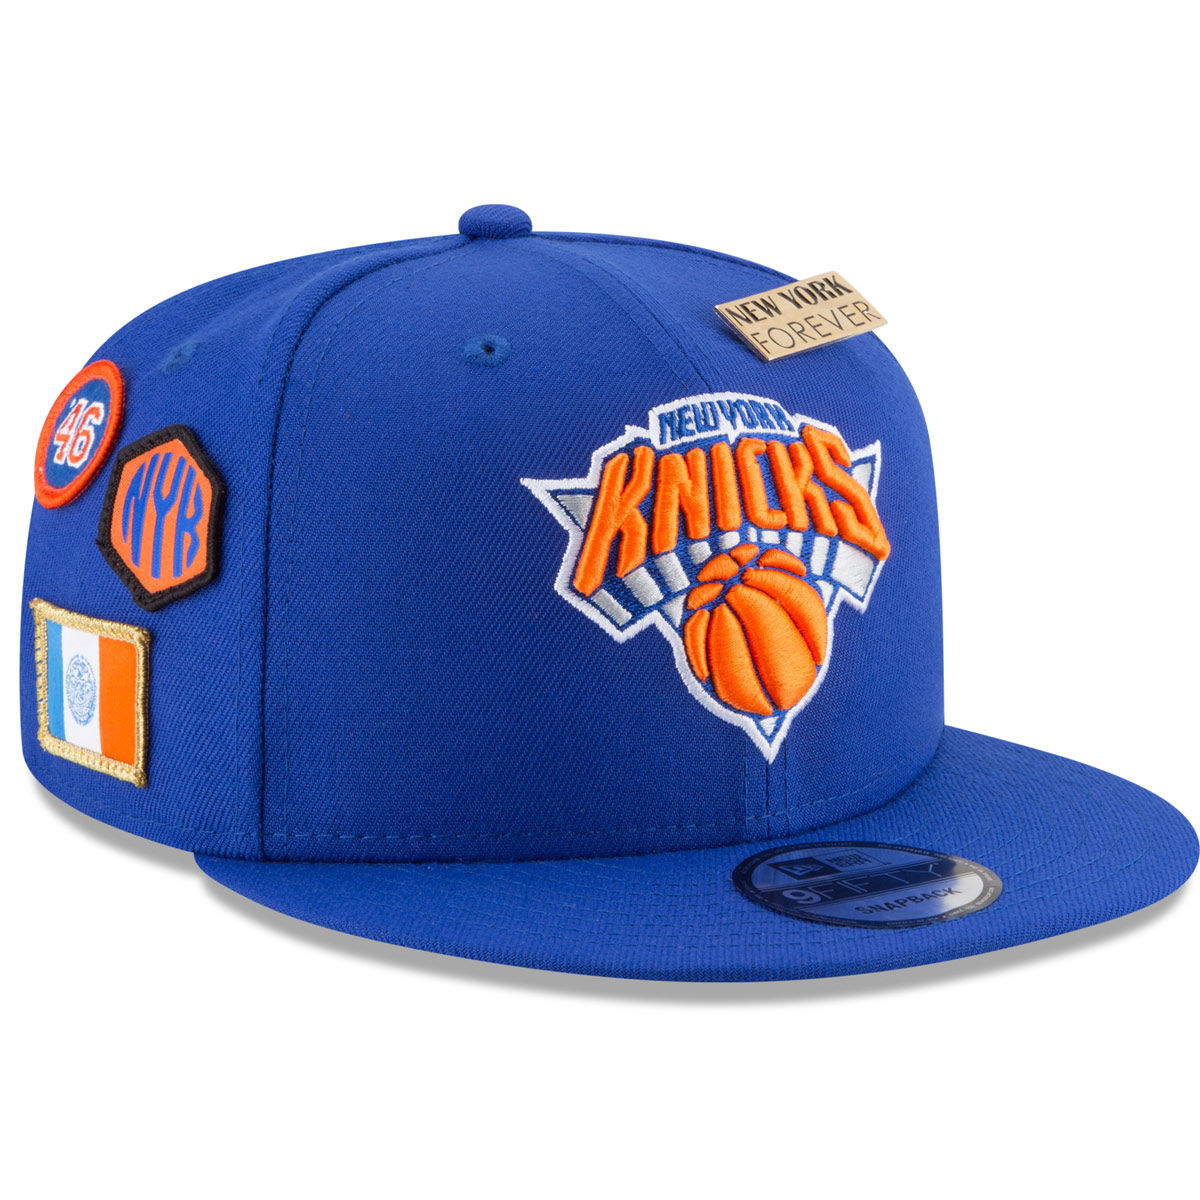 New York Knicks Adult 2018 NBA Draft 9FIFTY Snapback Hat